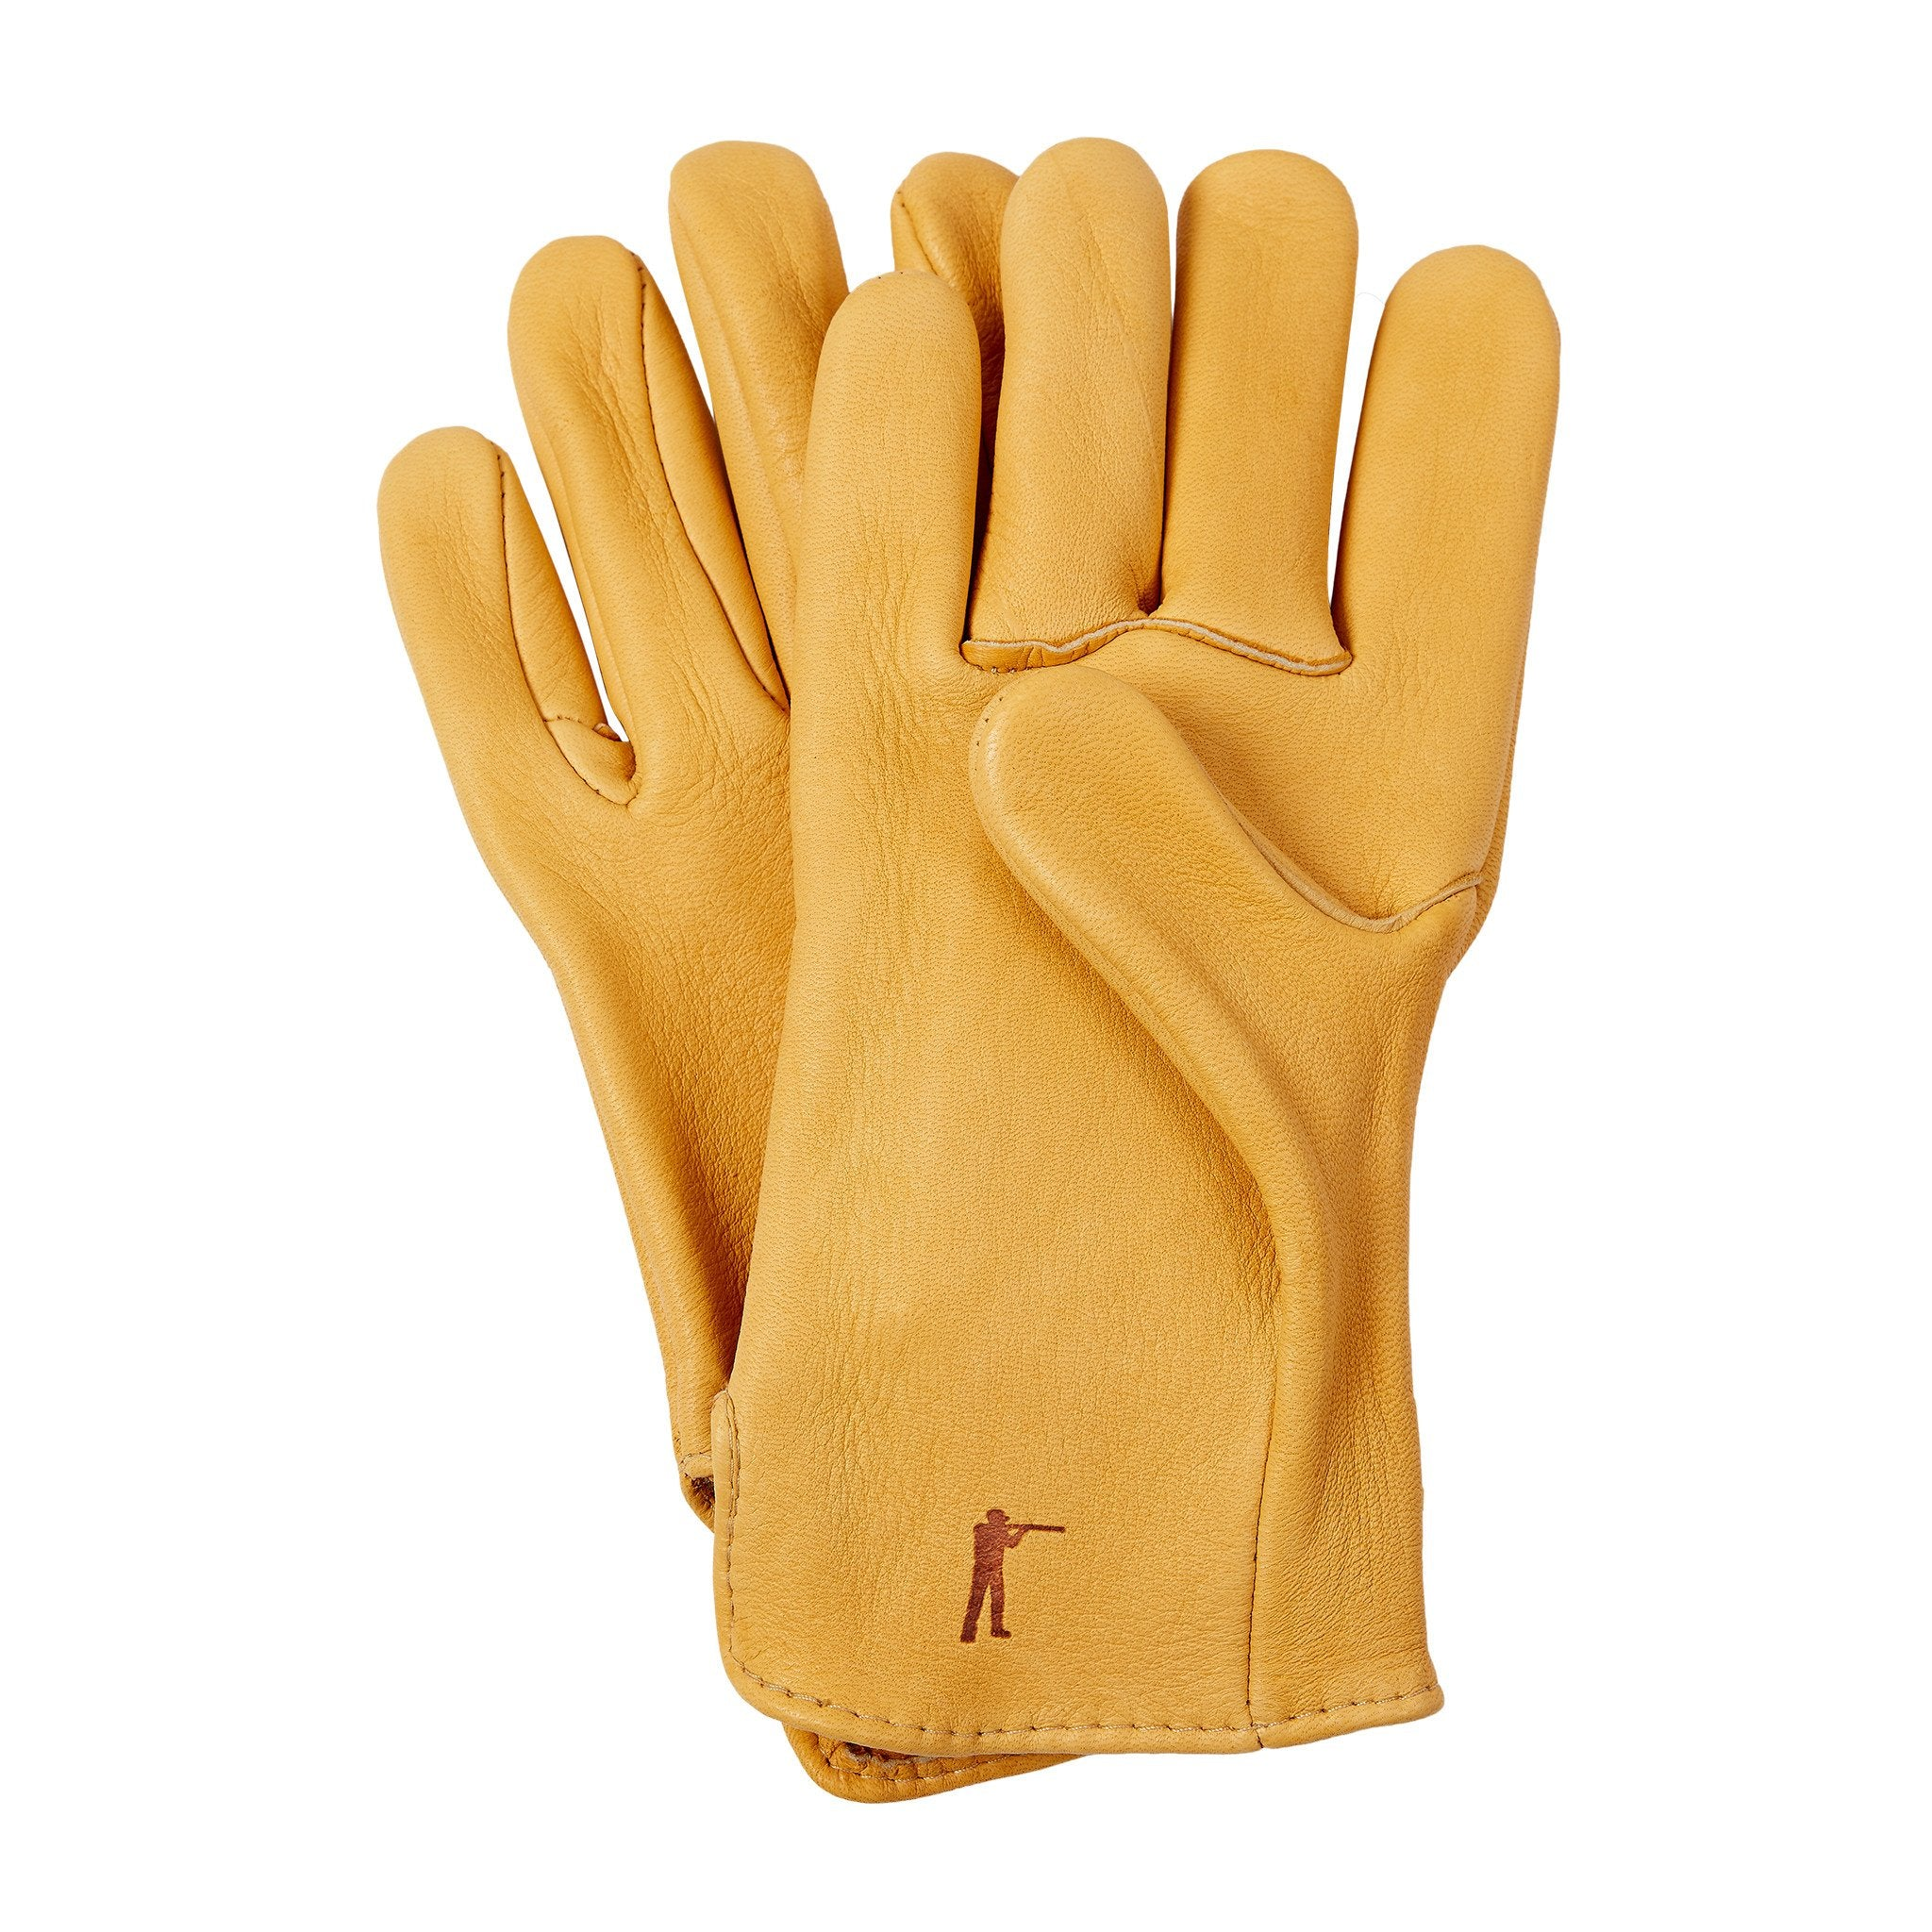 Elkskin Leather Gloves Unlined